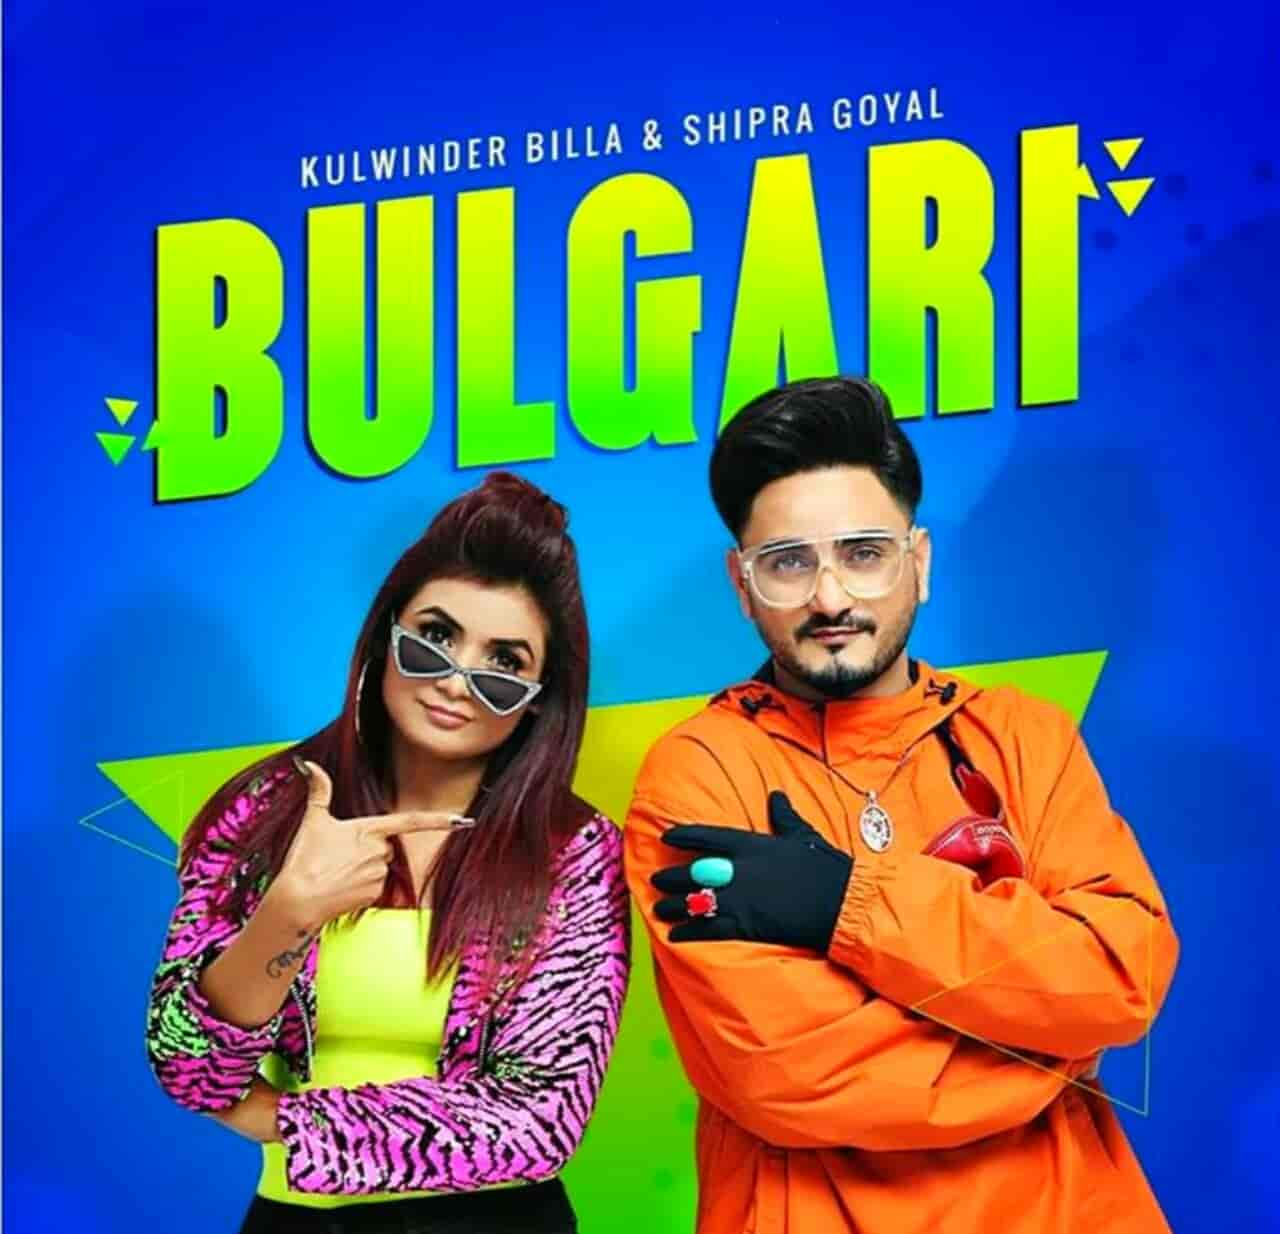 Bulgari Kulwinder Billa and Shipra Goyal song Images